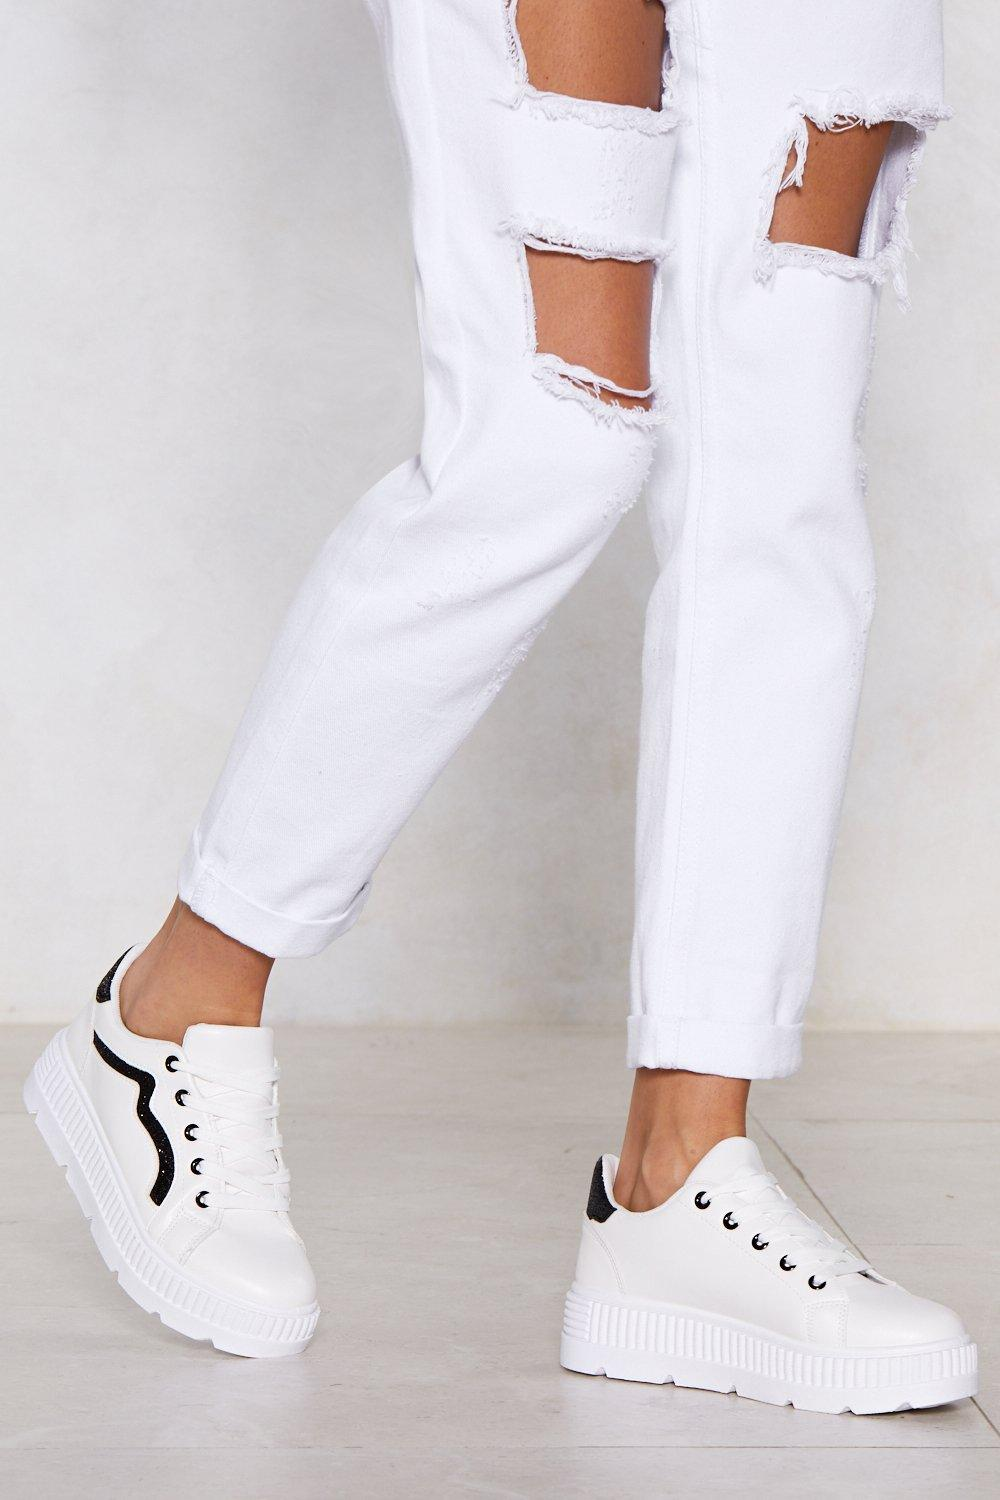 the best attitude 4fdc0 68c1b My Heart and Sole Platform Sneakers | Shop Clothes at Nasty Gal!